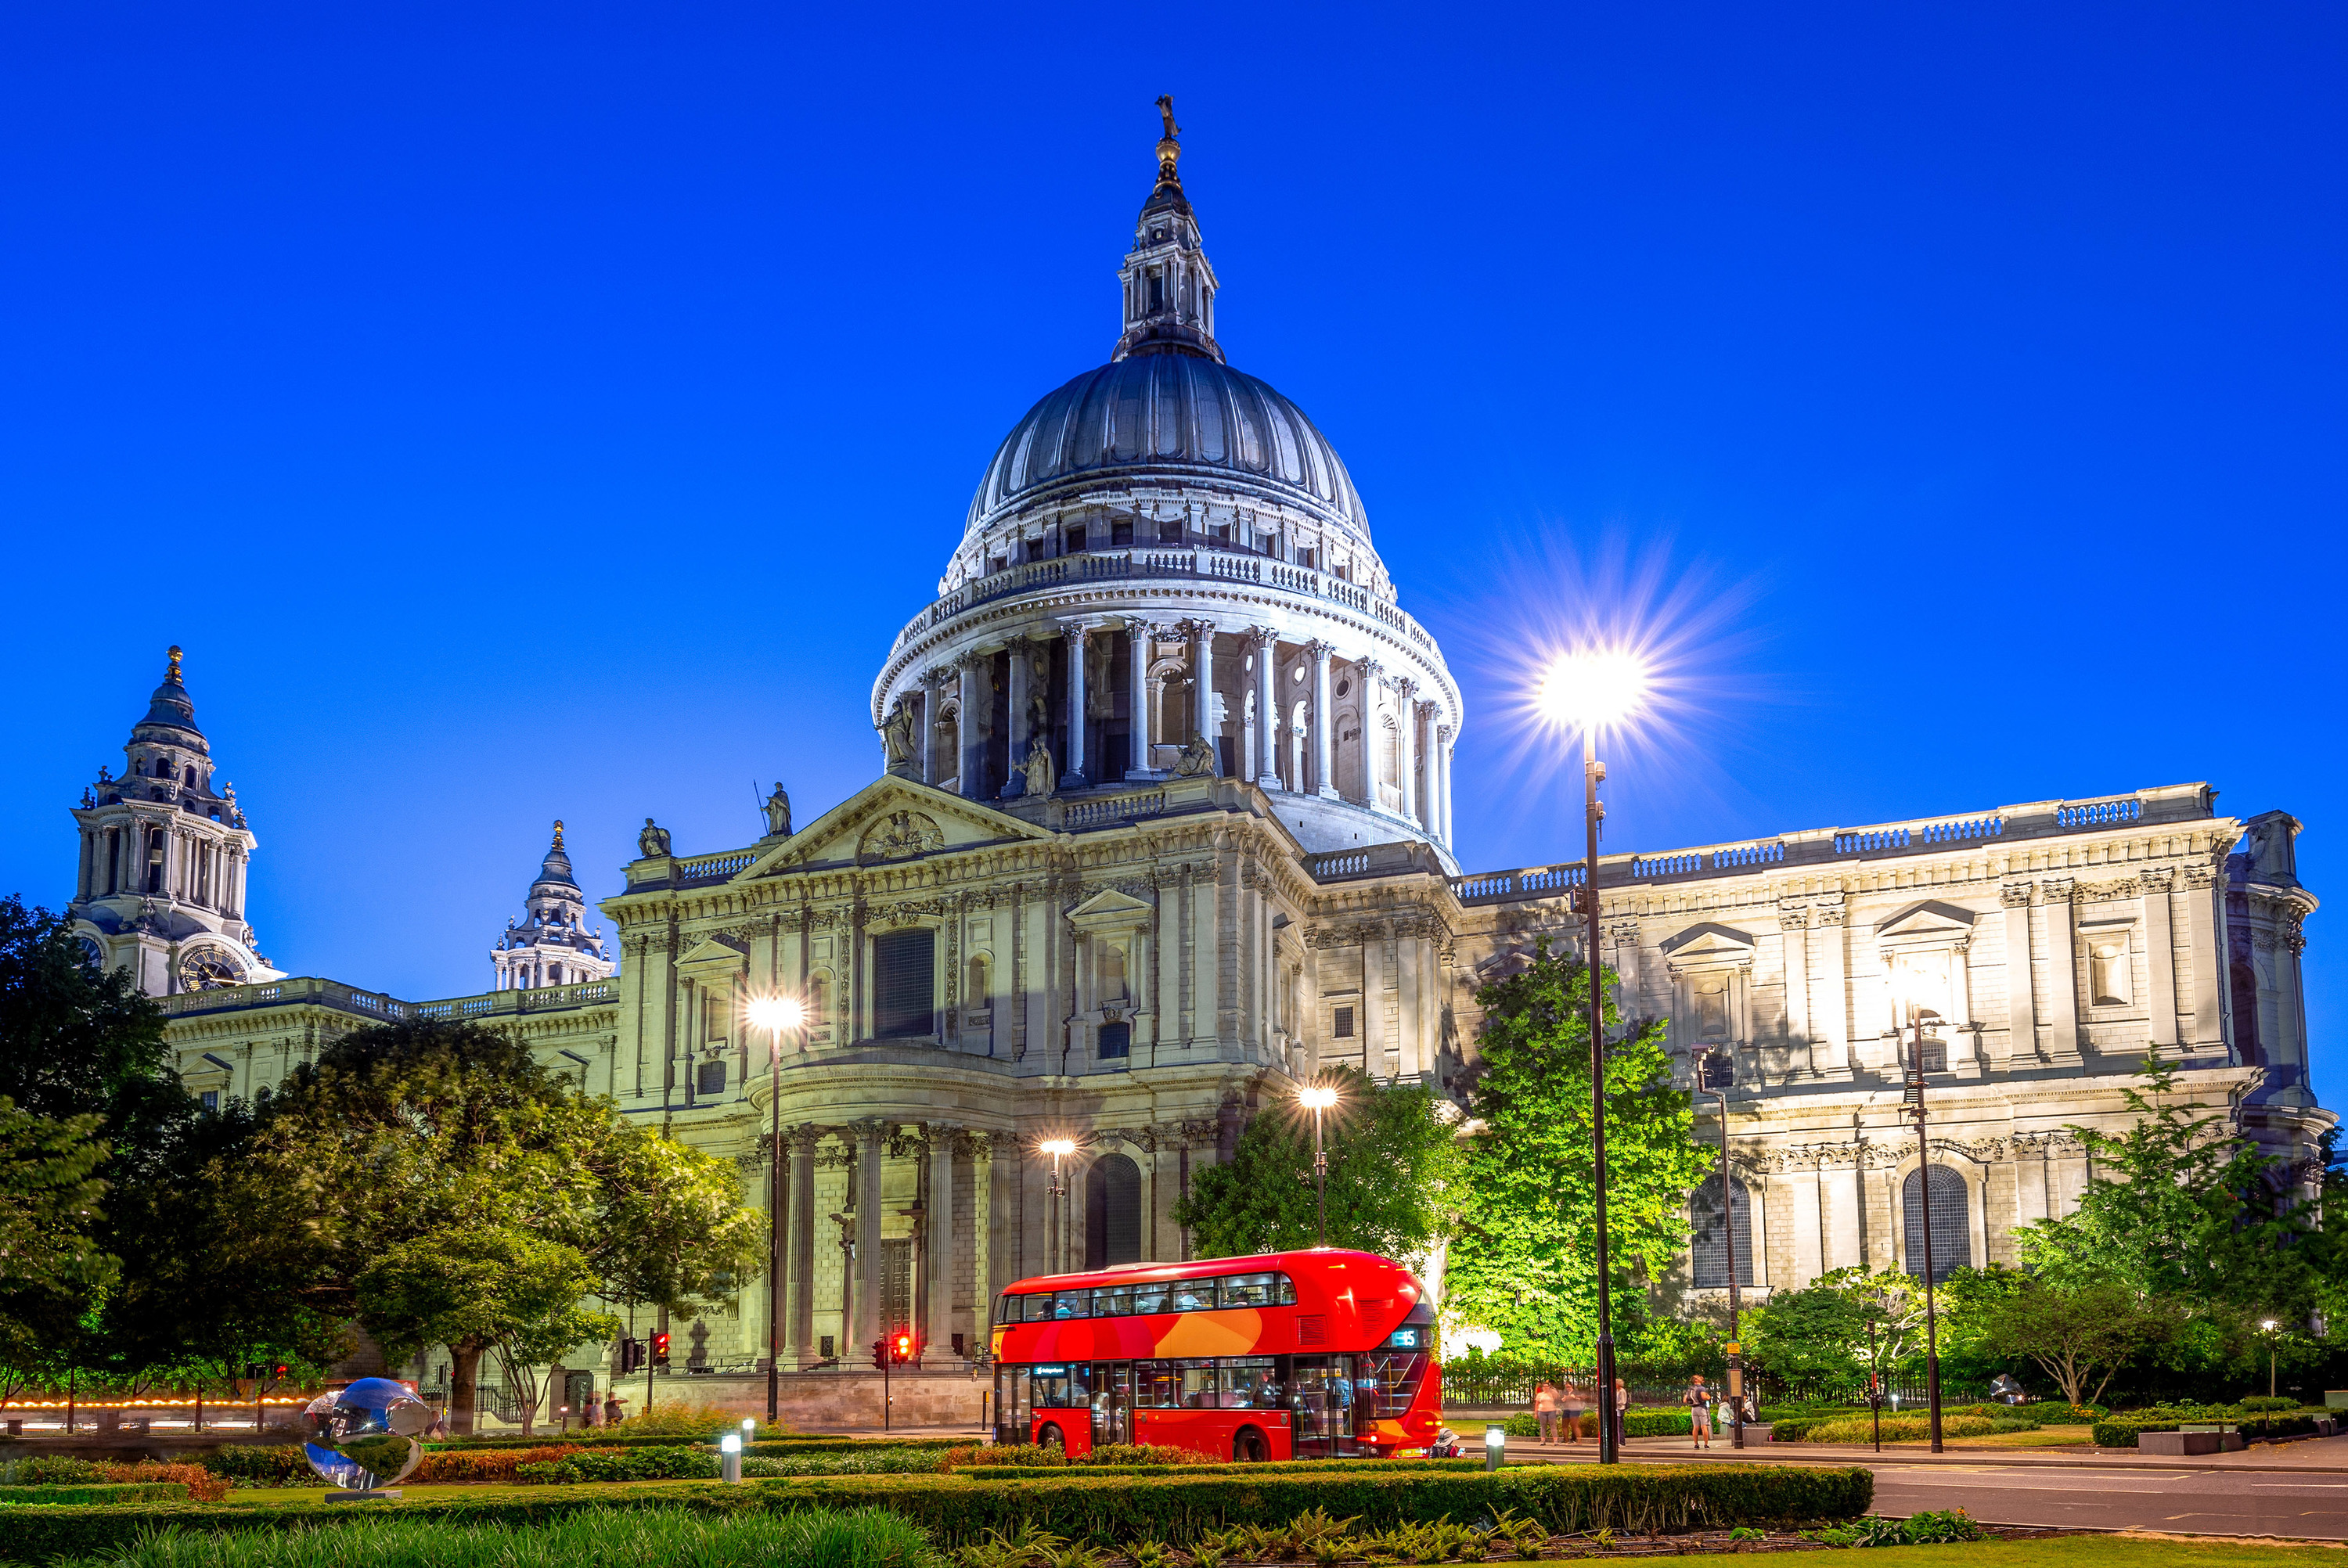 11 ace things to do in London with your out-of-town mates